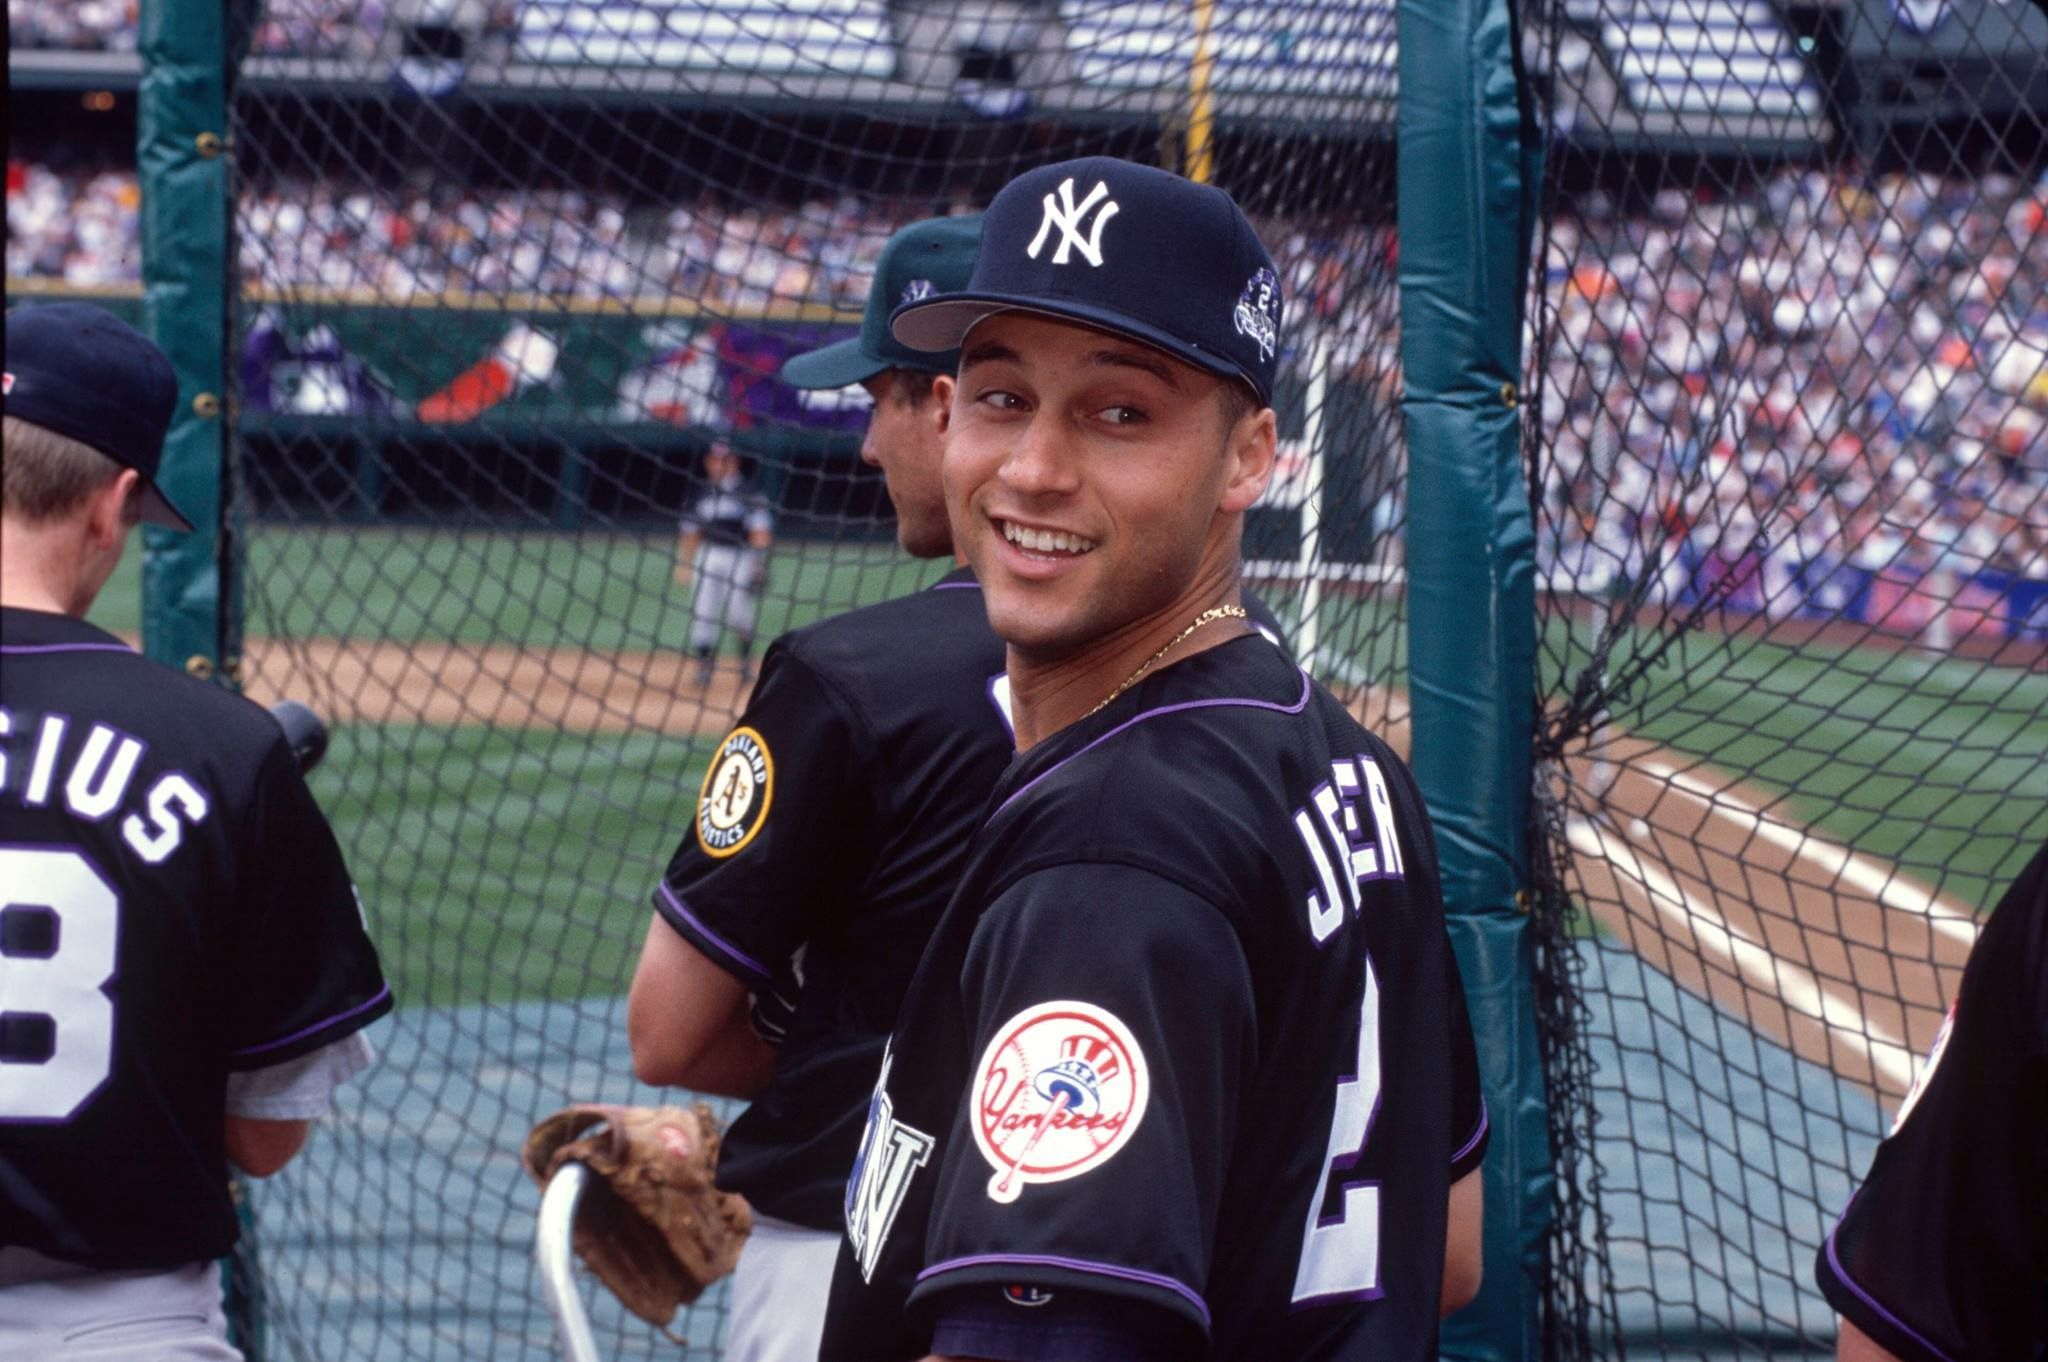 Pin By Jeanette Stuart On Ny Yankees With Images Derek Jeter New York Yankees New York Yankees Baseball